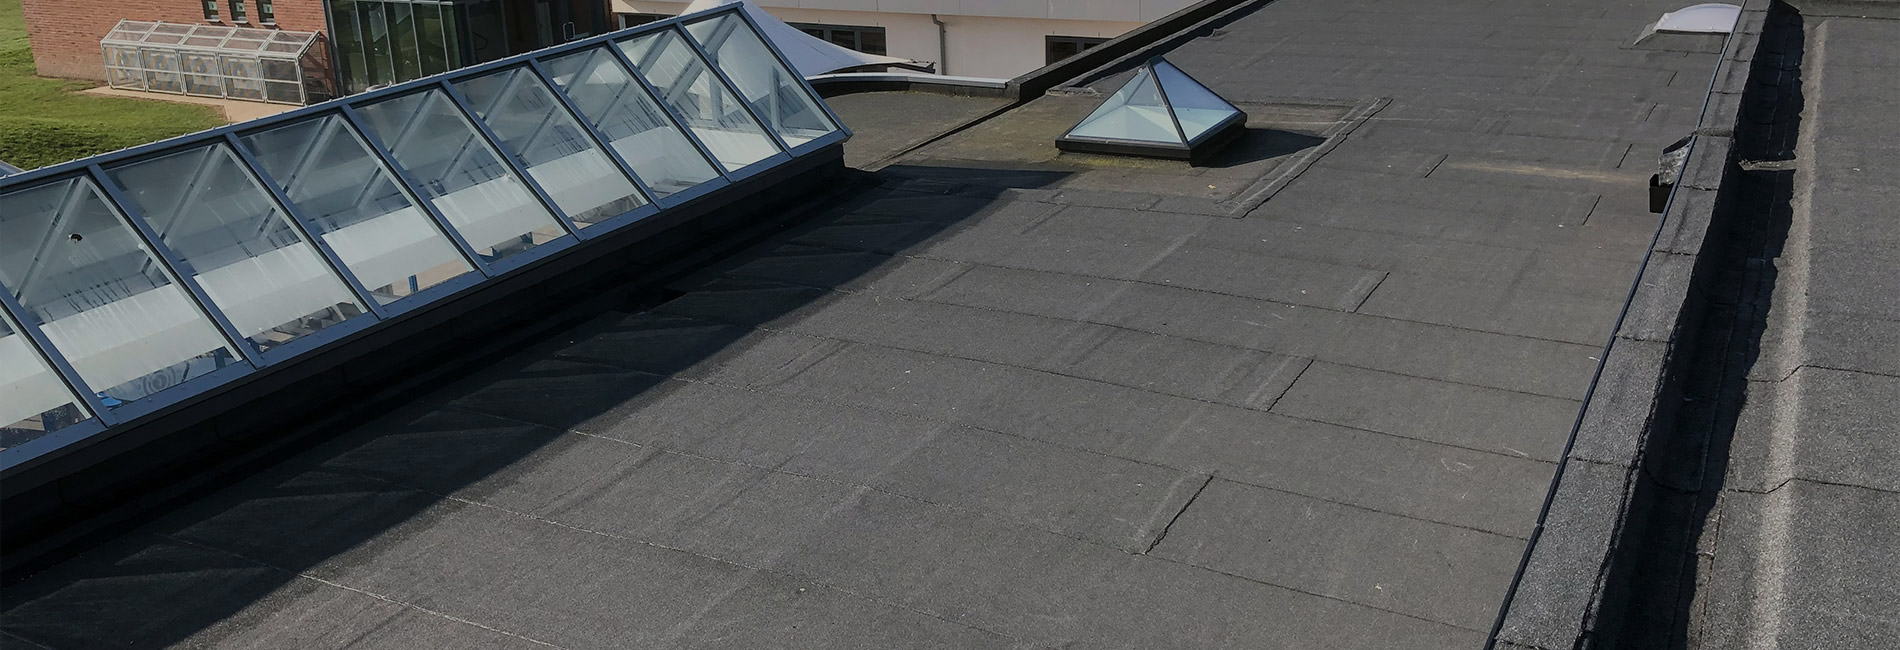 Specialists in all aspects of commercial and industrial flat roofing from a family company with over 50 years experience in the industry